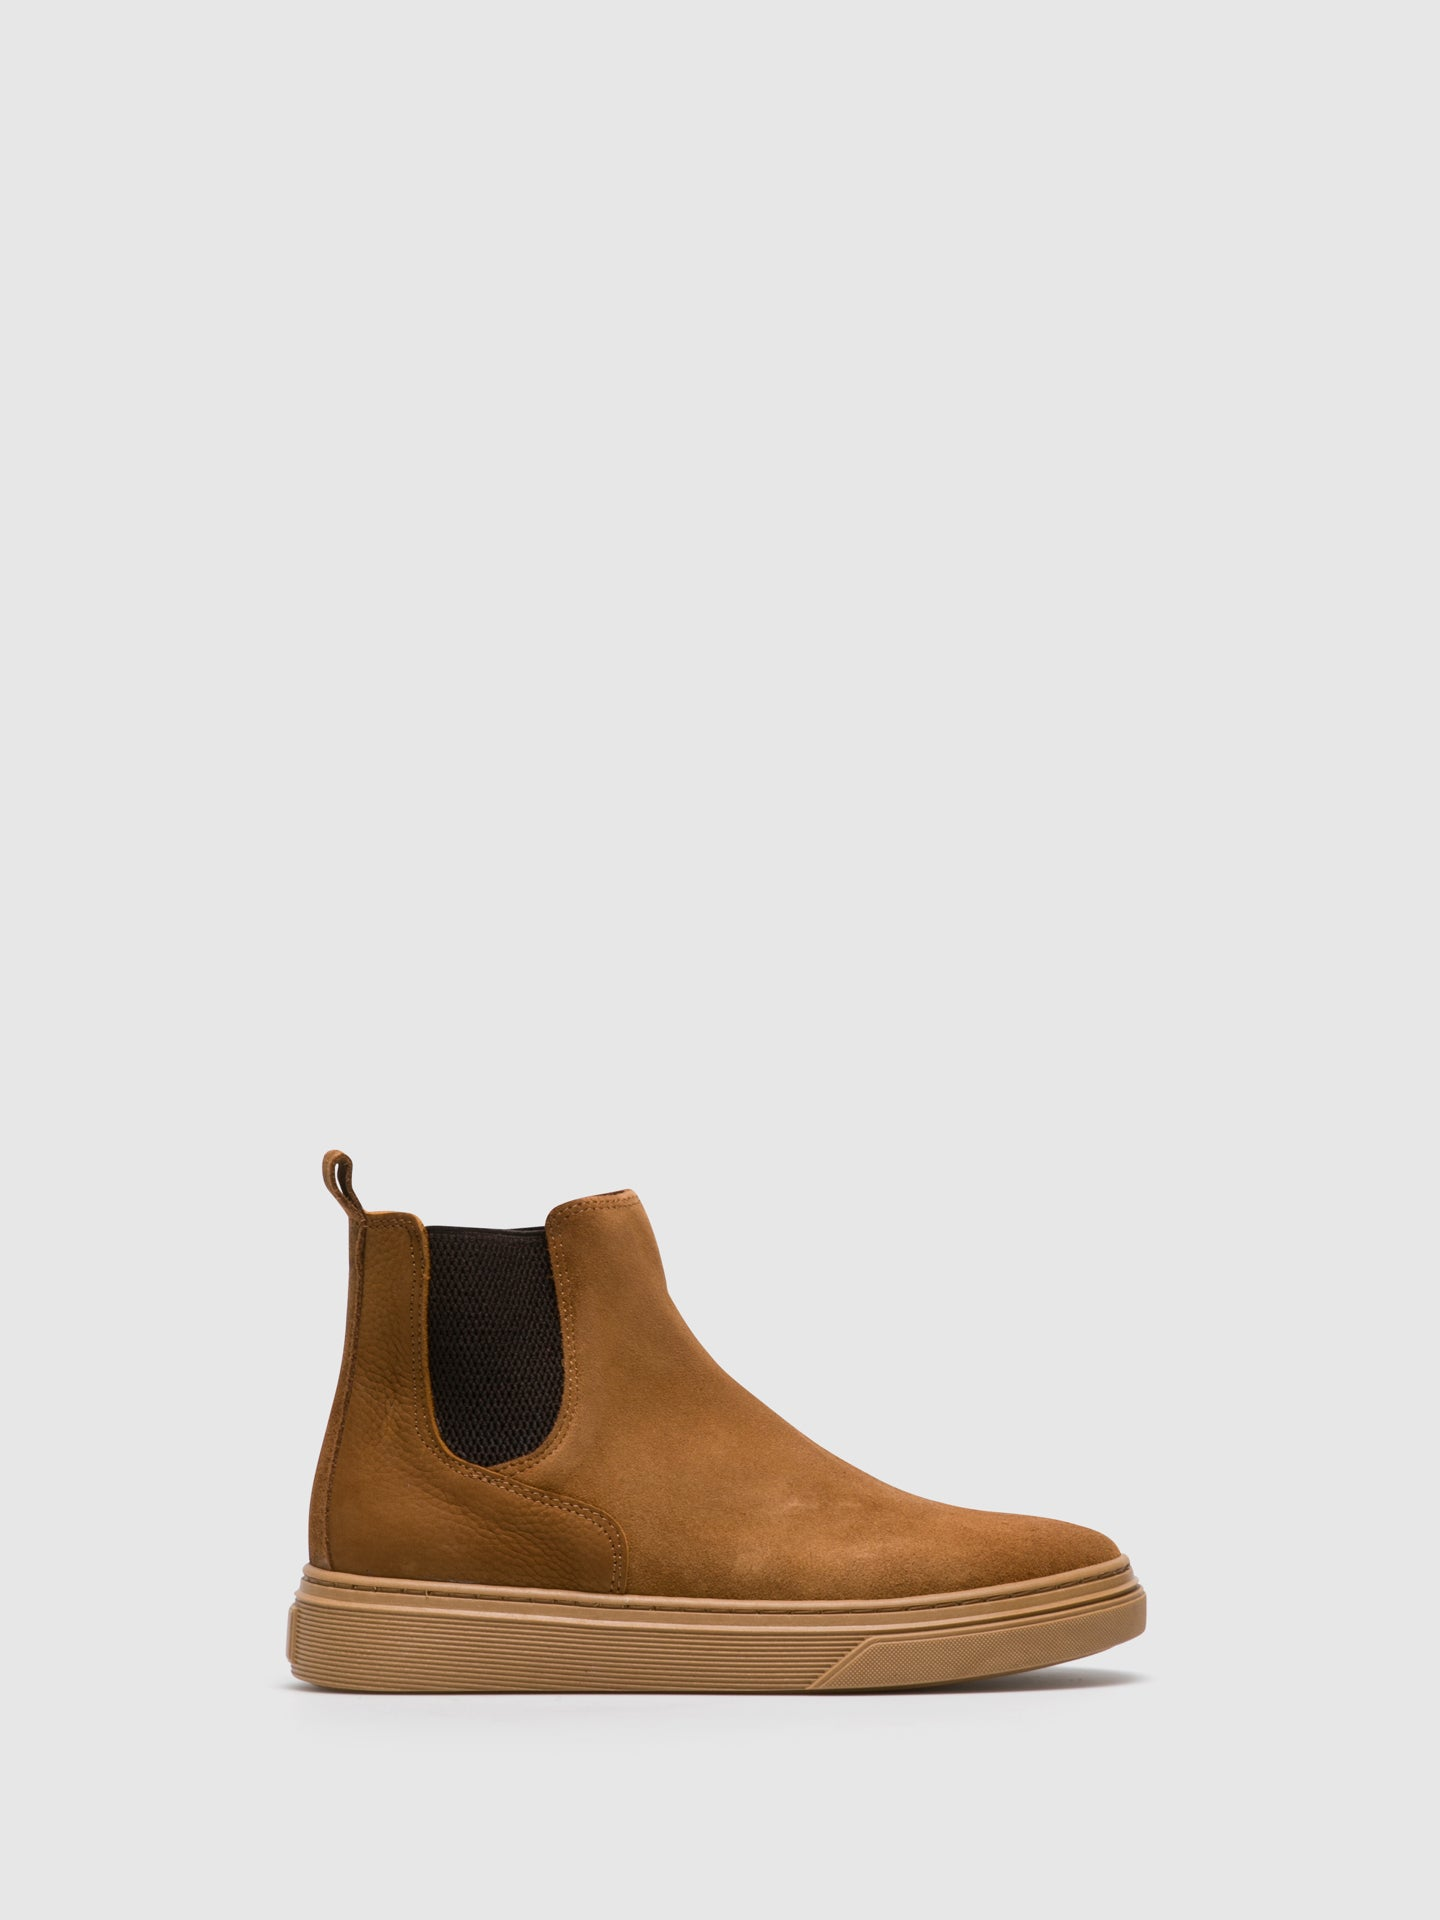 Foreva Sienna Chelsea Ankle Boots